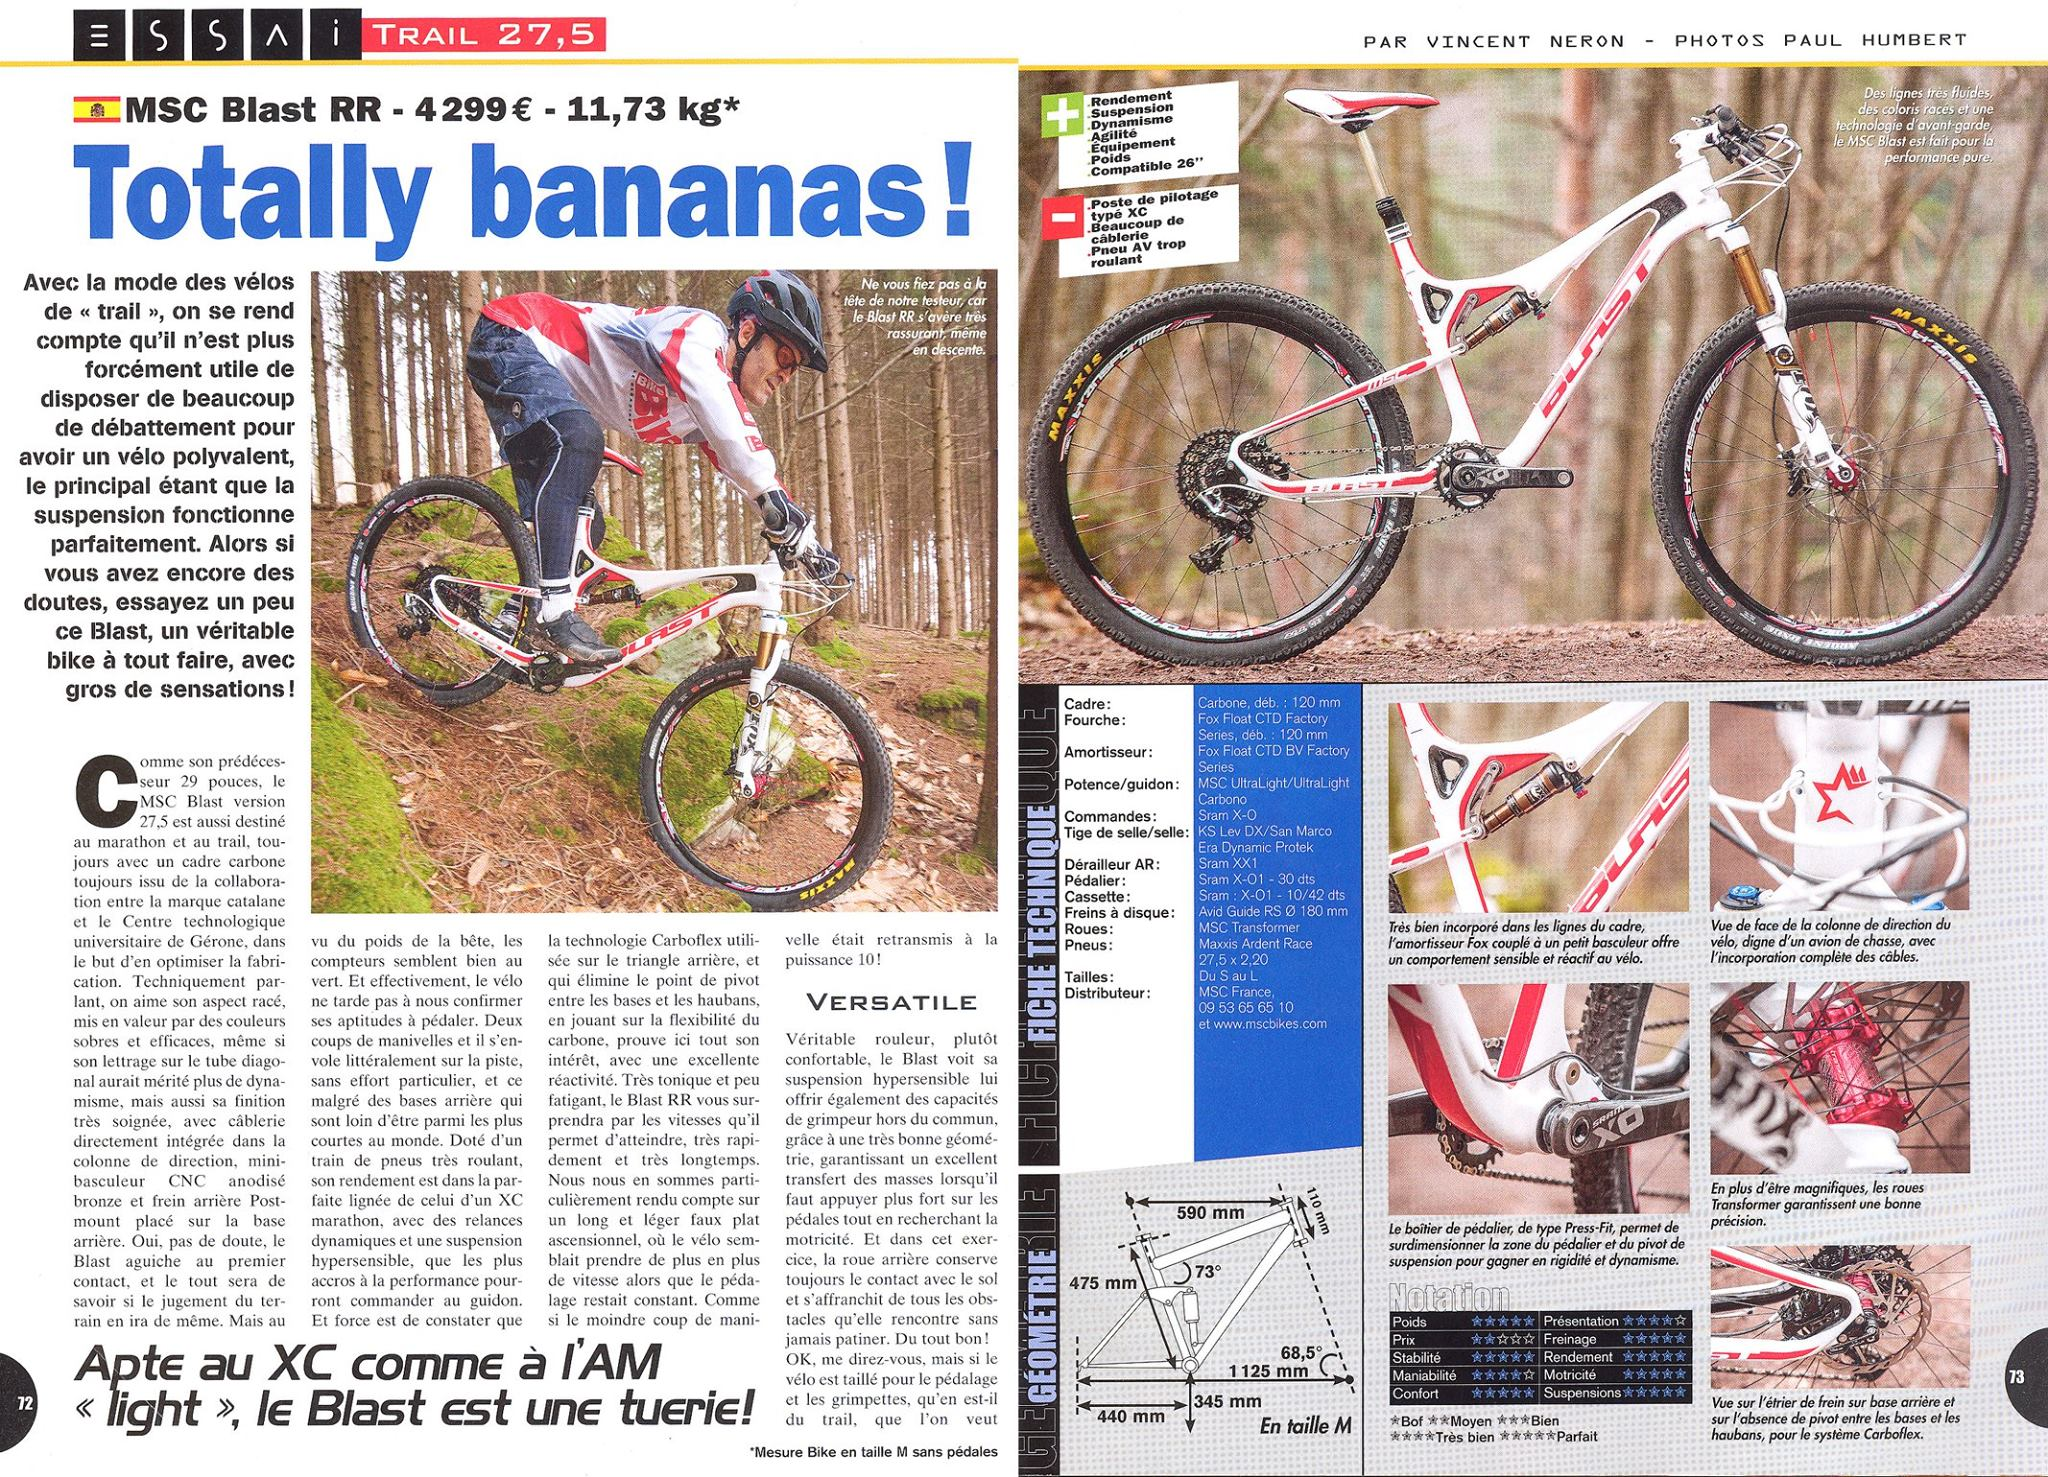 BLAST 27.5 - Near Perfect Score in France Bike 2015